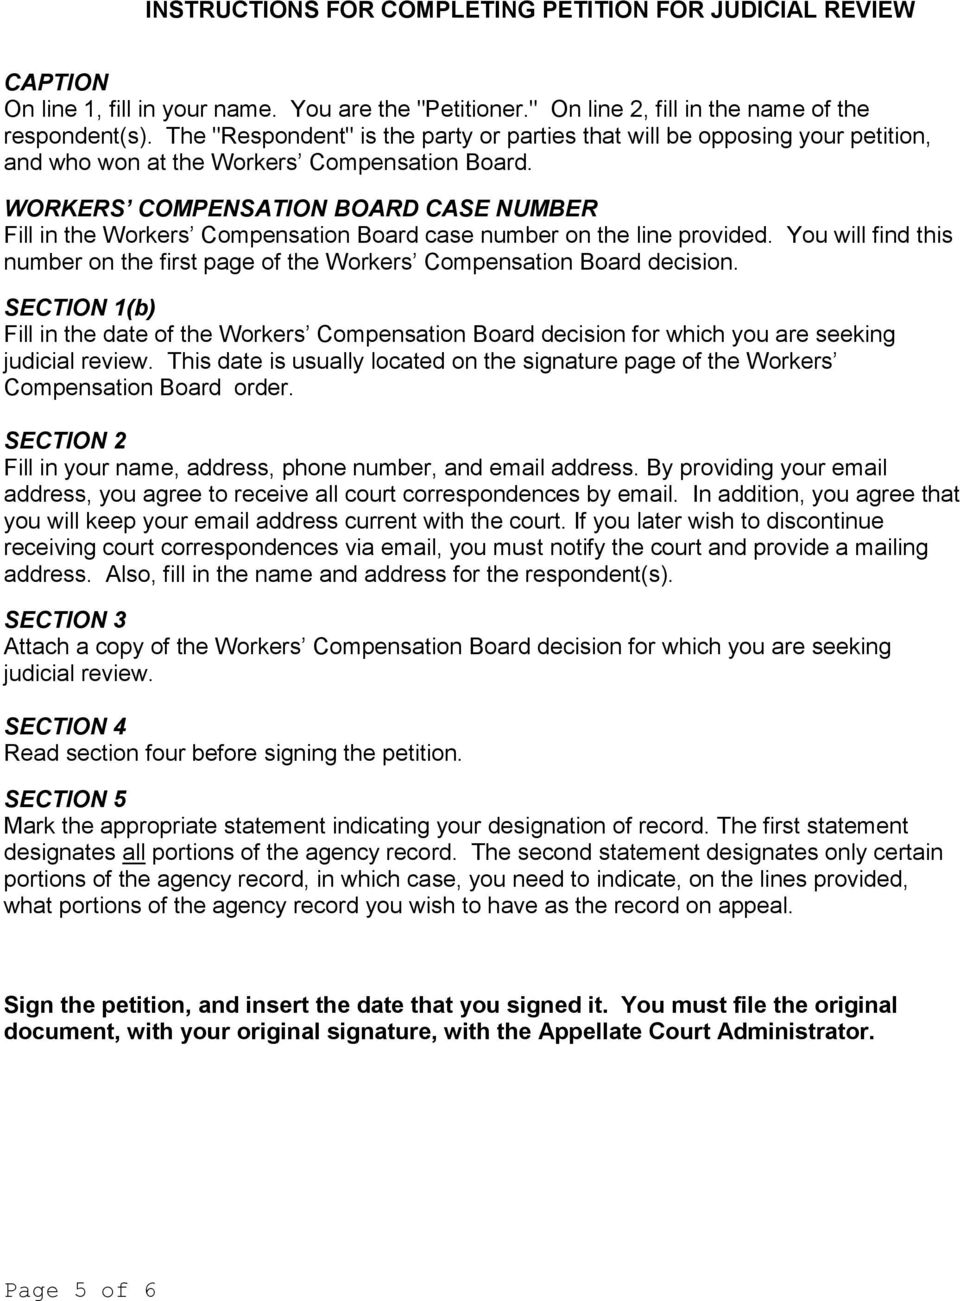 WORKERS COMPENSATION BOARD CASE NUMBER Fill in the Workers Compensation Board case number on the line provided. You will find this number on the first page of the Workers Compensation Board decision.